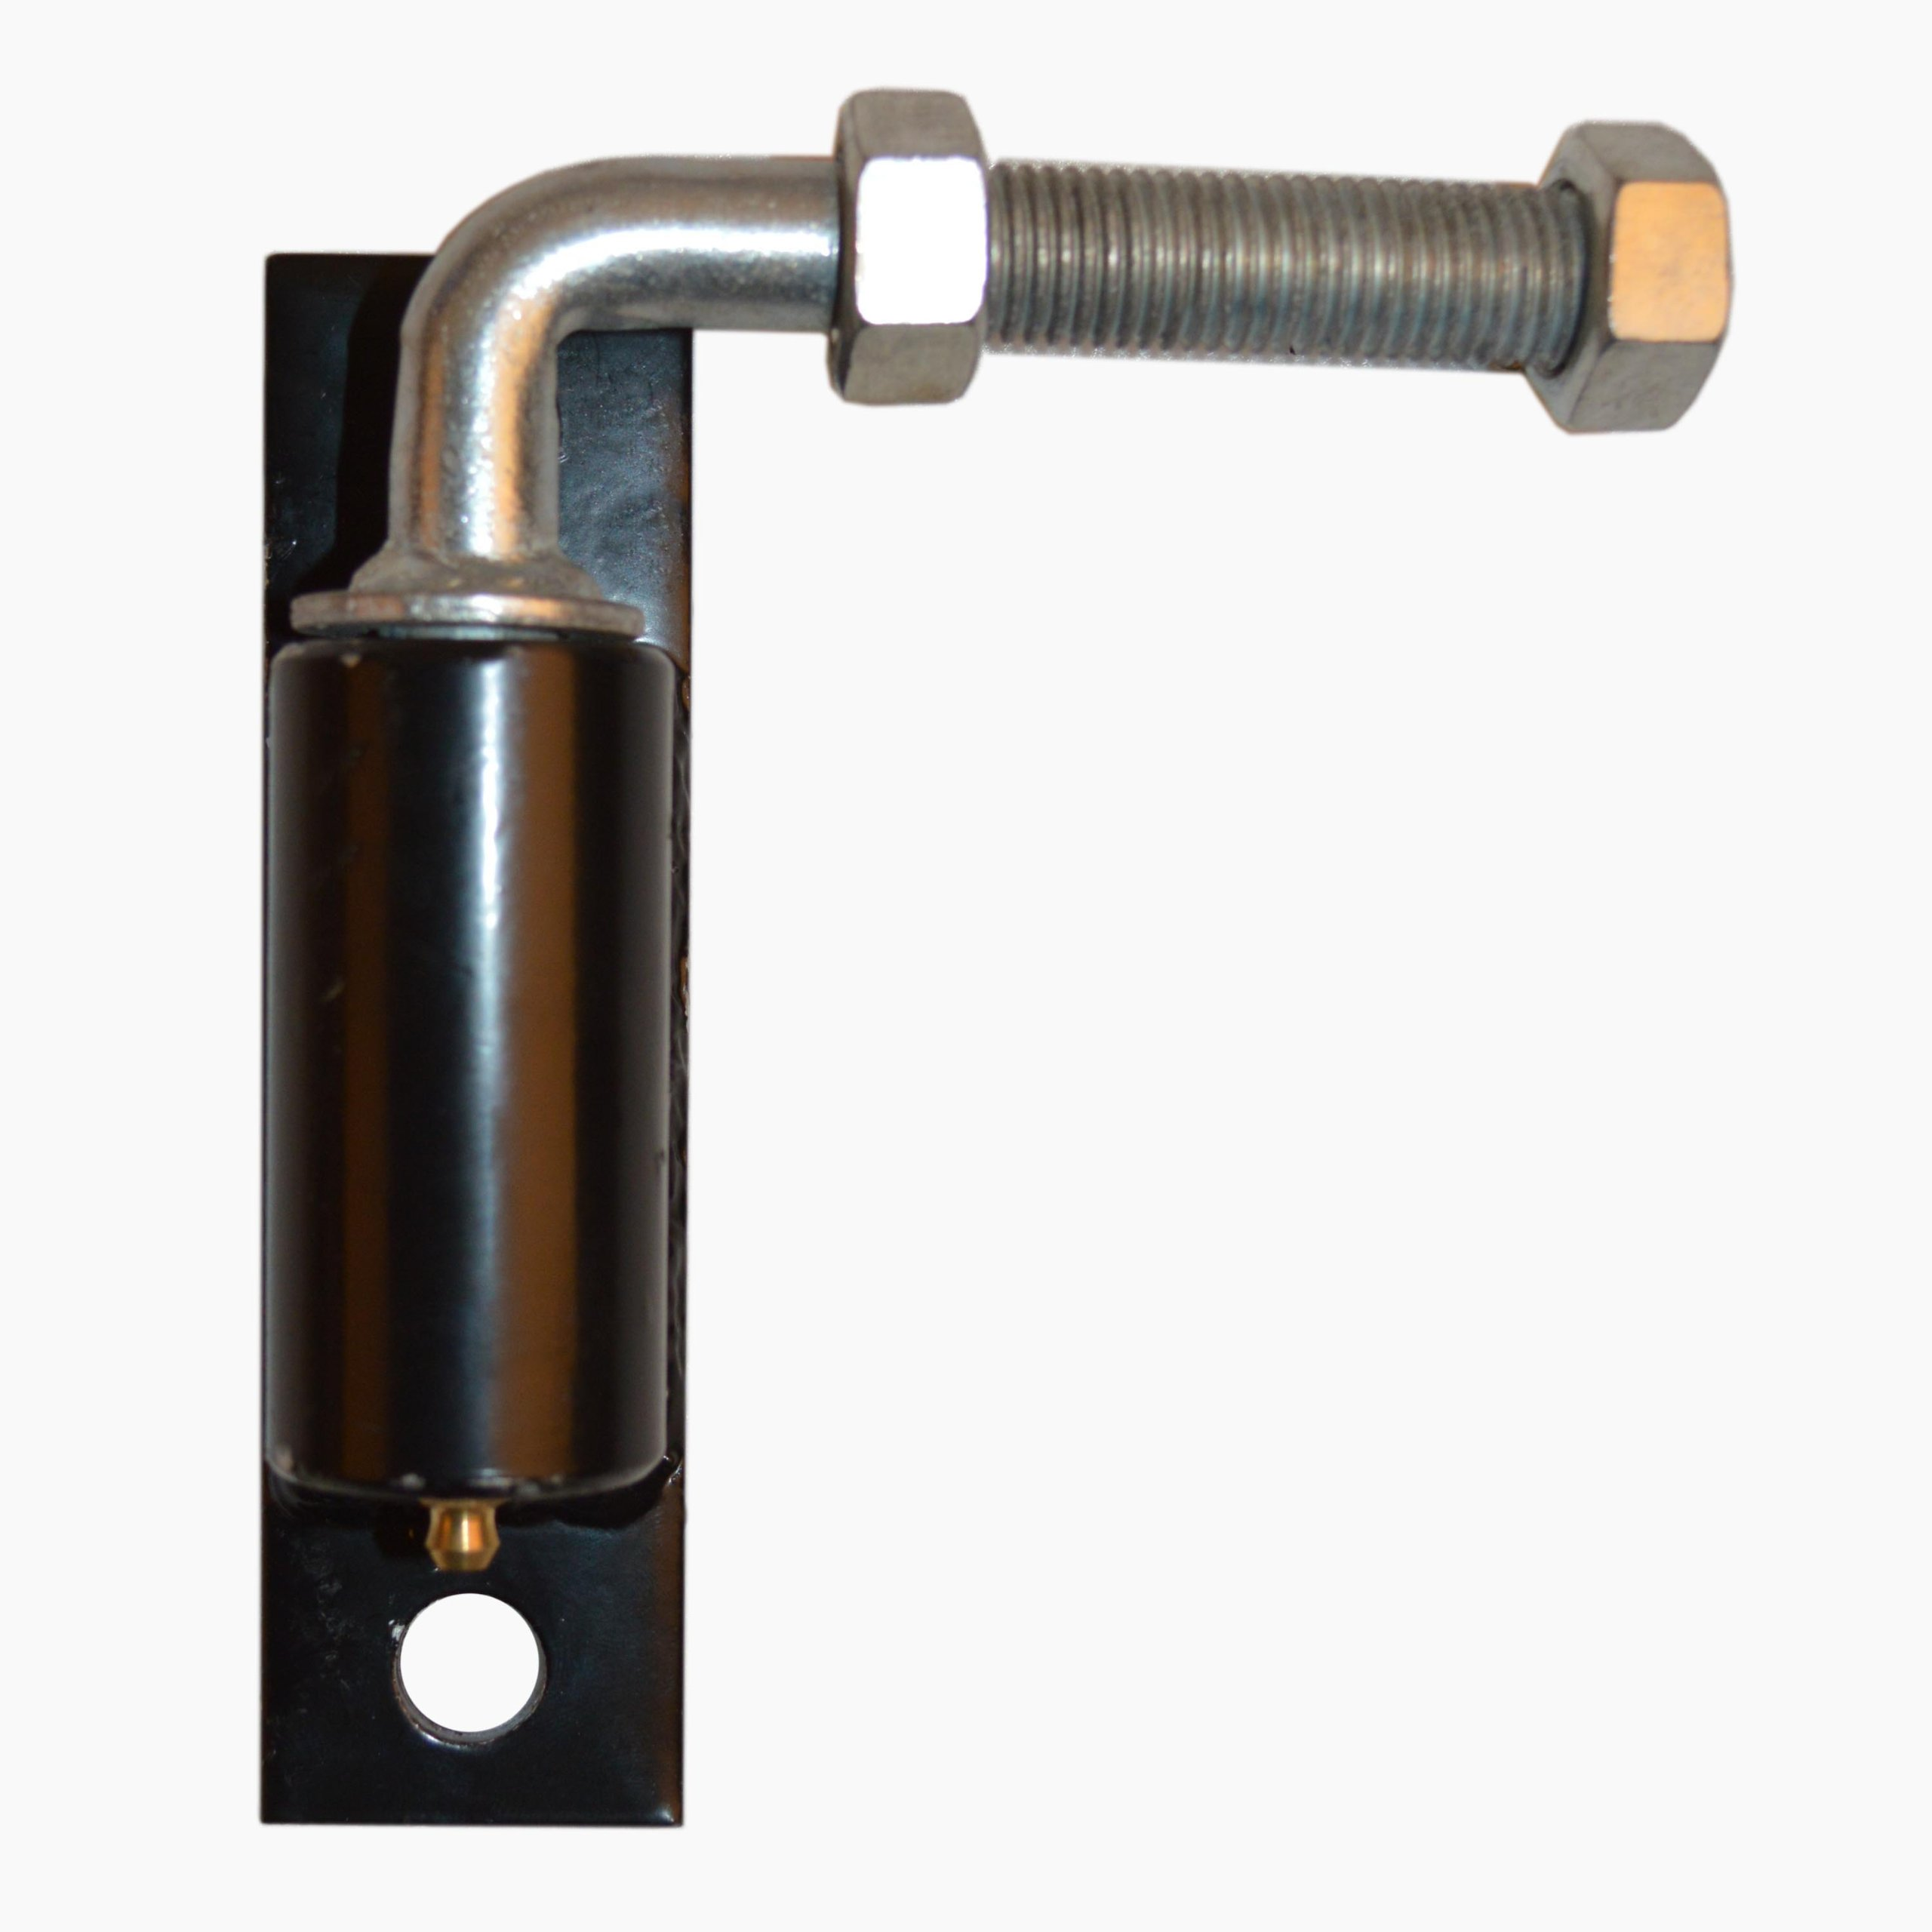 ALEKO 5/8'' Hinge J-Bolt for Aleko Driveway Gates Iron Gate with 2 Bolts, Nuts and Washers